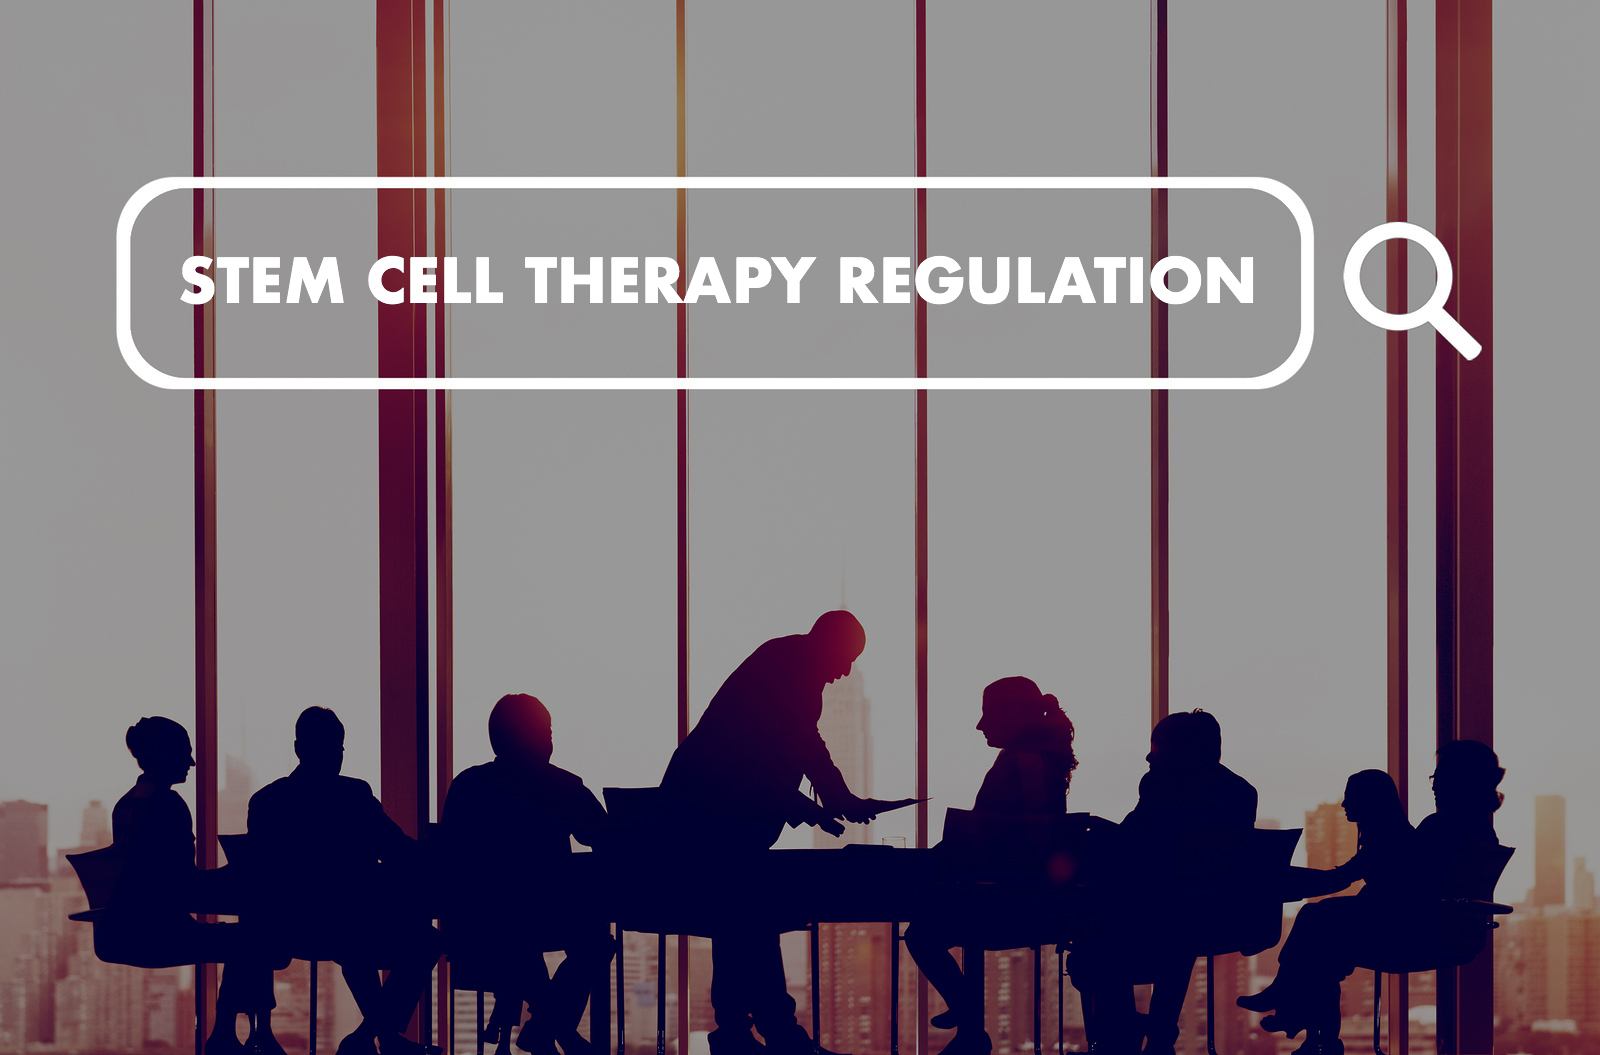 Asymmetrex Joins RegMedNet Panel to Discuss Cell Therapy Regulation